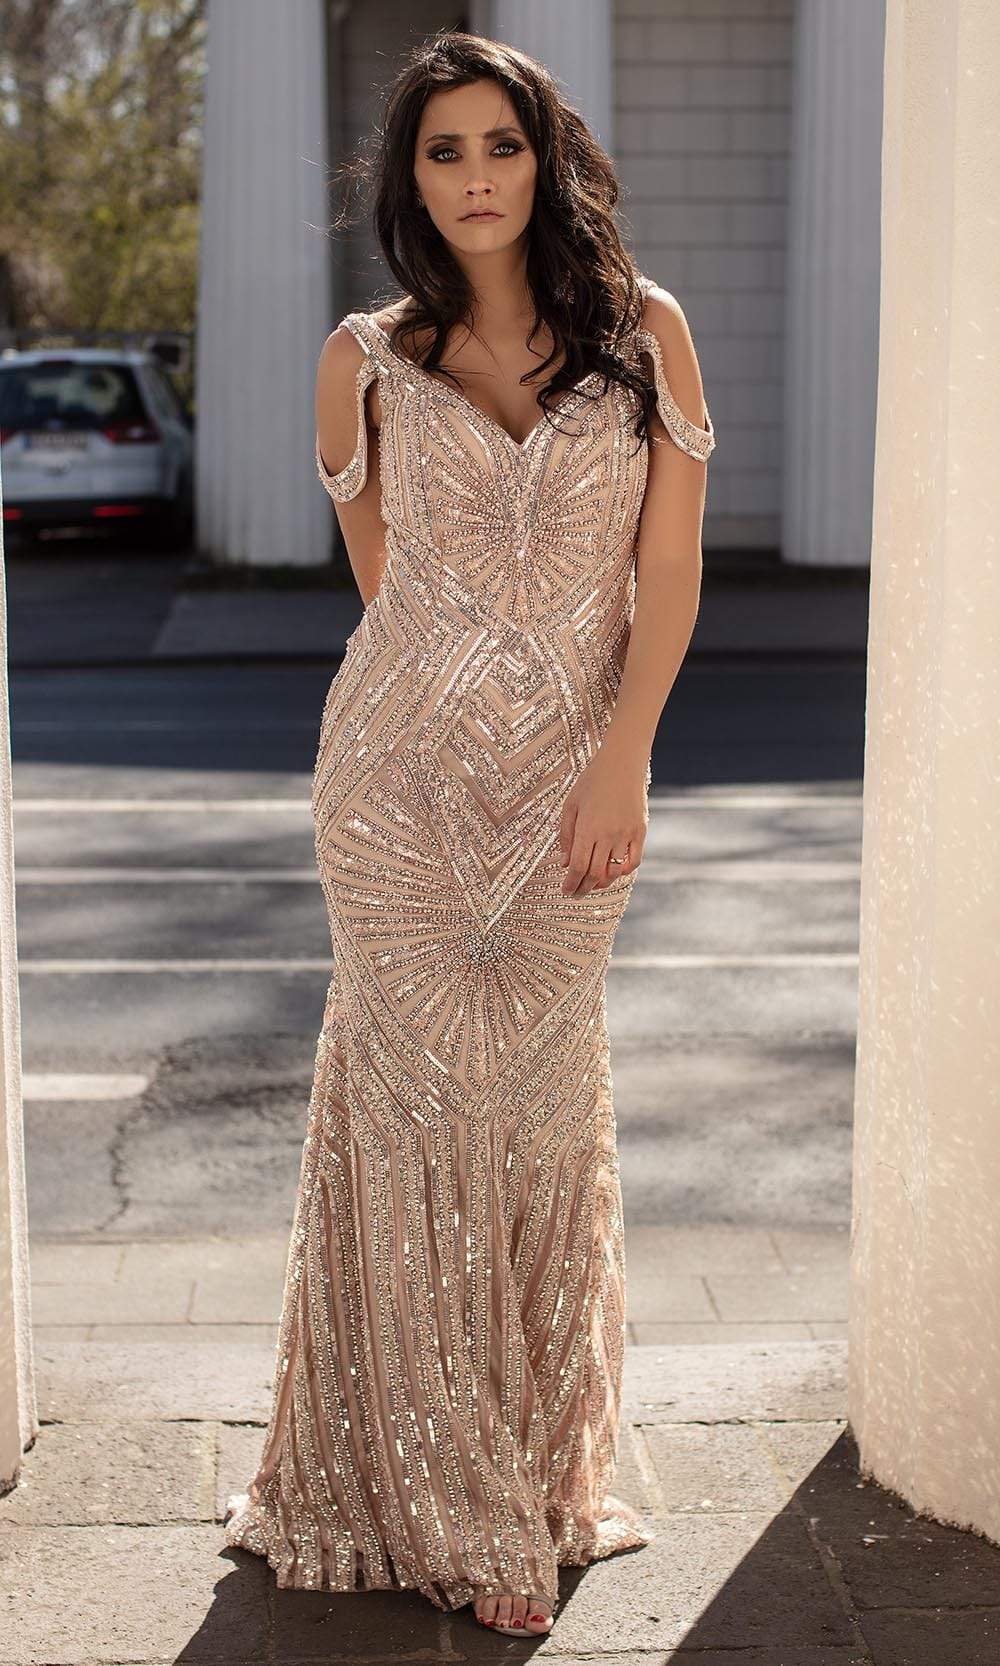 Chic and Holland - HF1588 Cold Shoulder Sequined Trumpet Gown from Chic and Holland